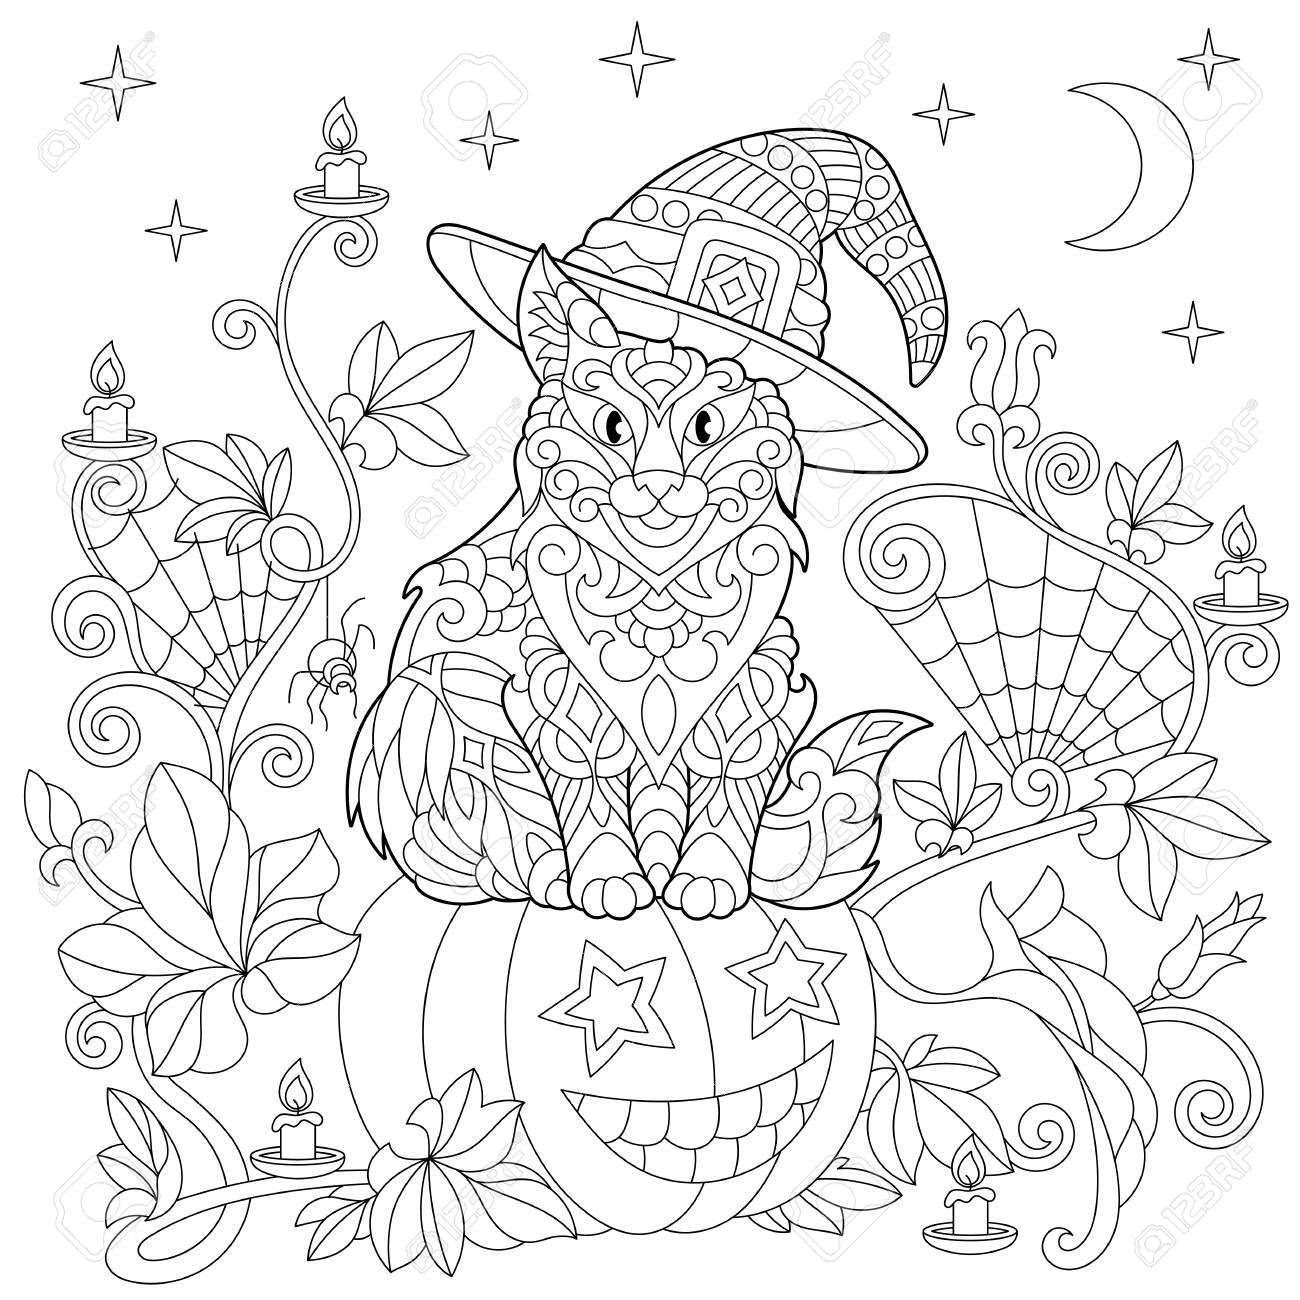 1300x1300 Halloween Coloring Page. Cat In A Hat, Halloween Pumpkin, Spider